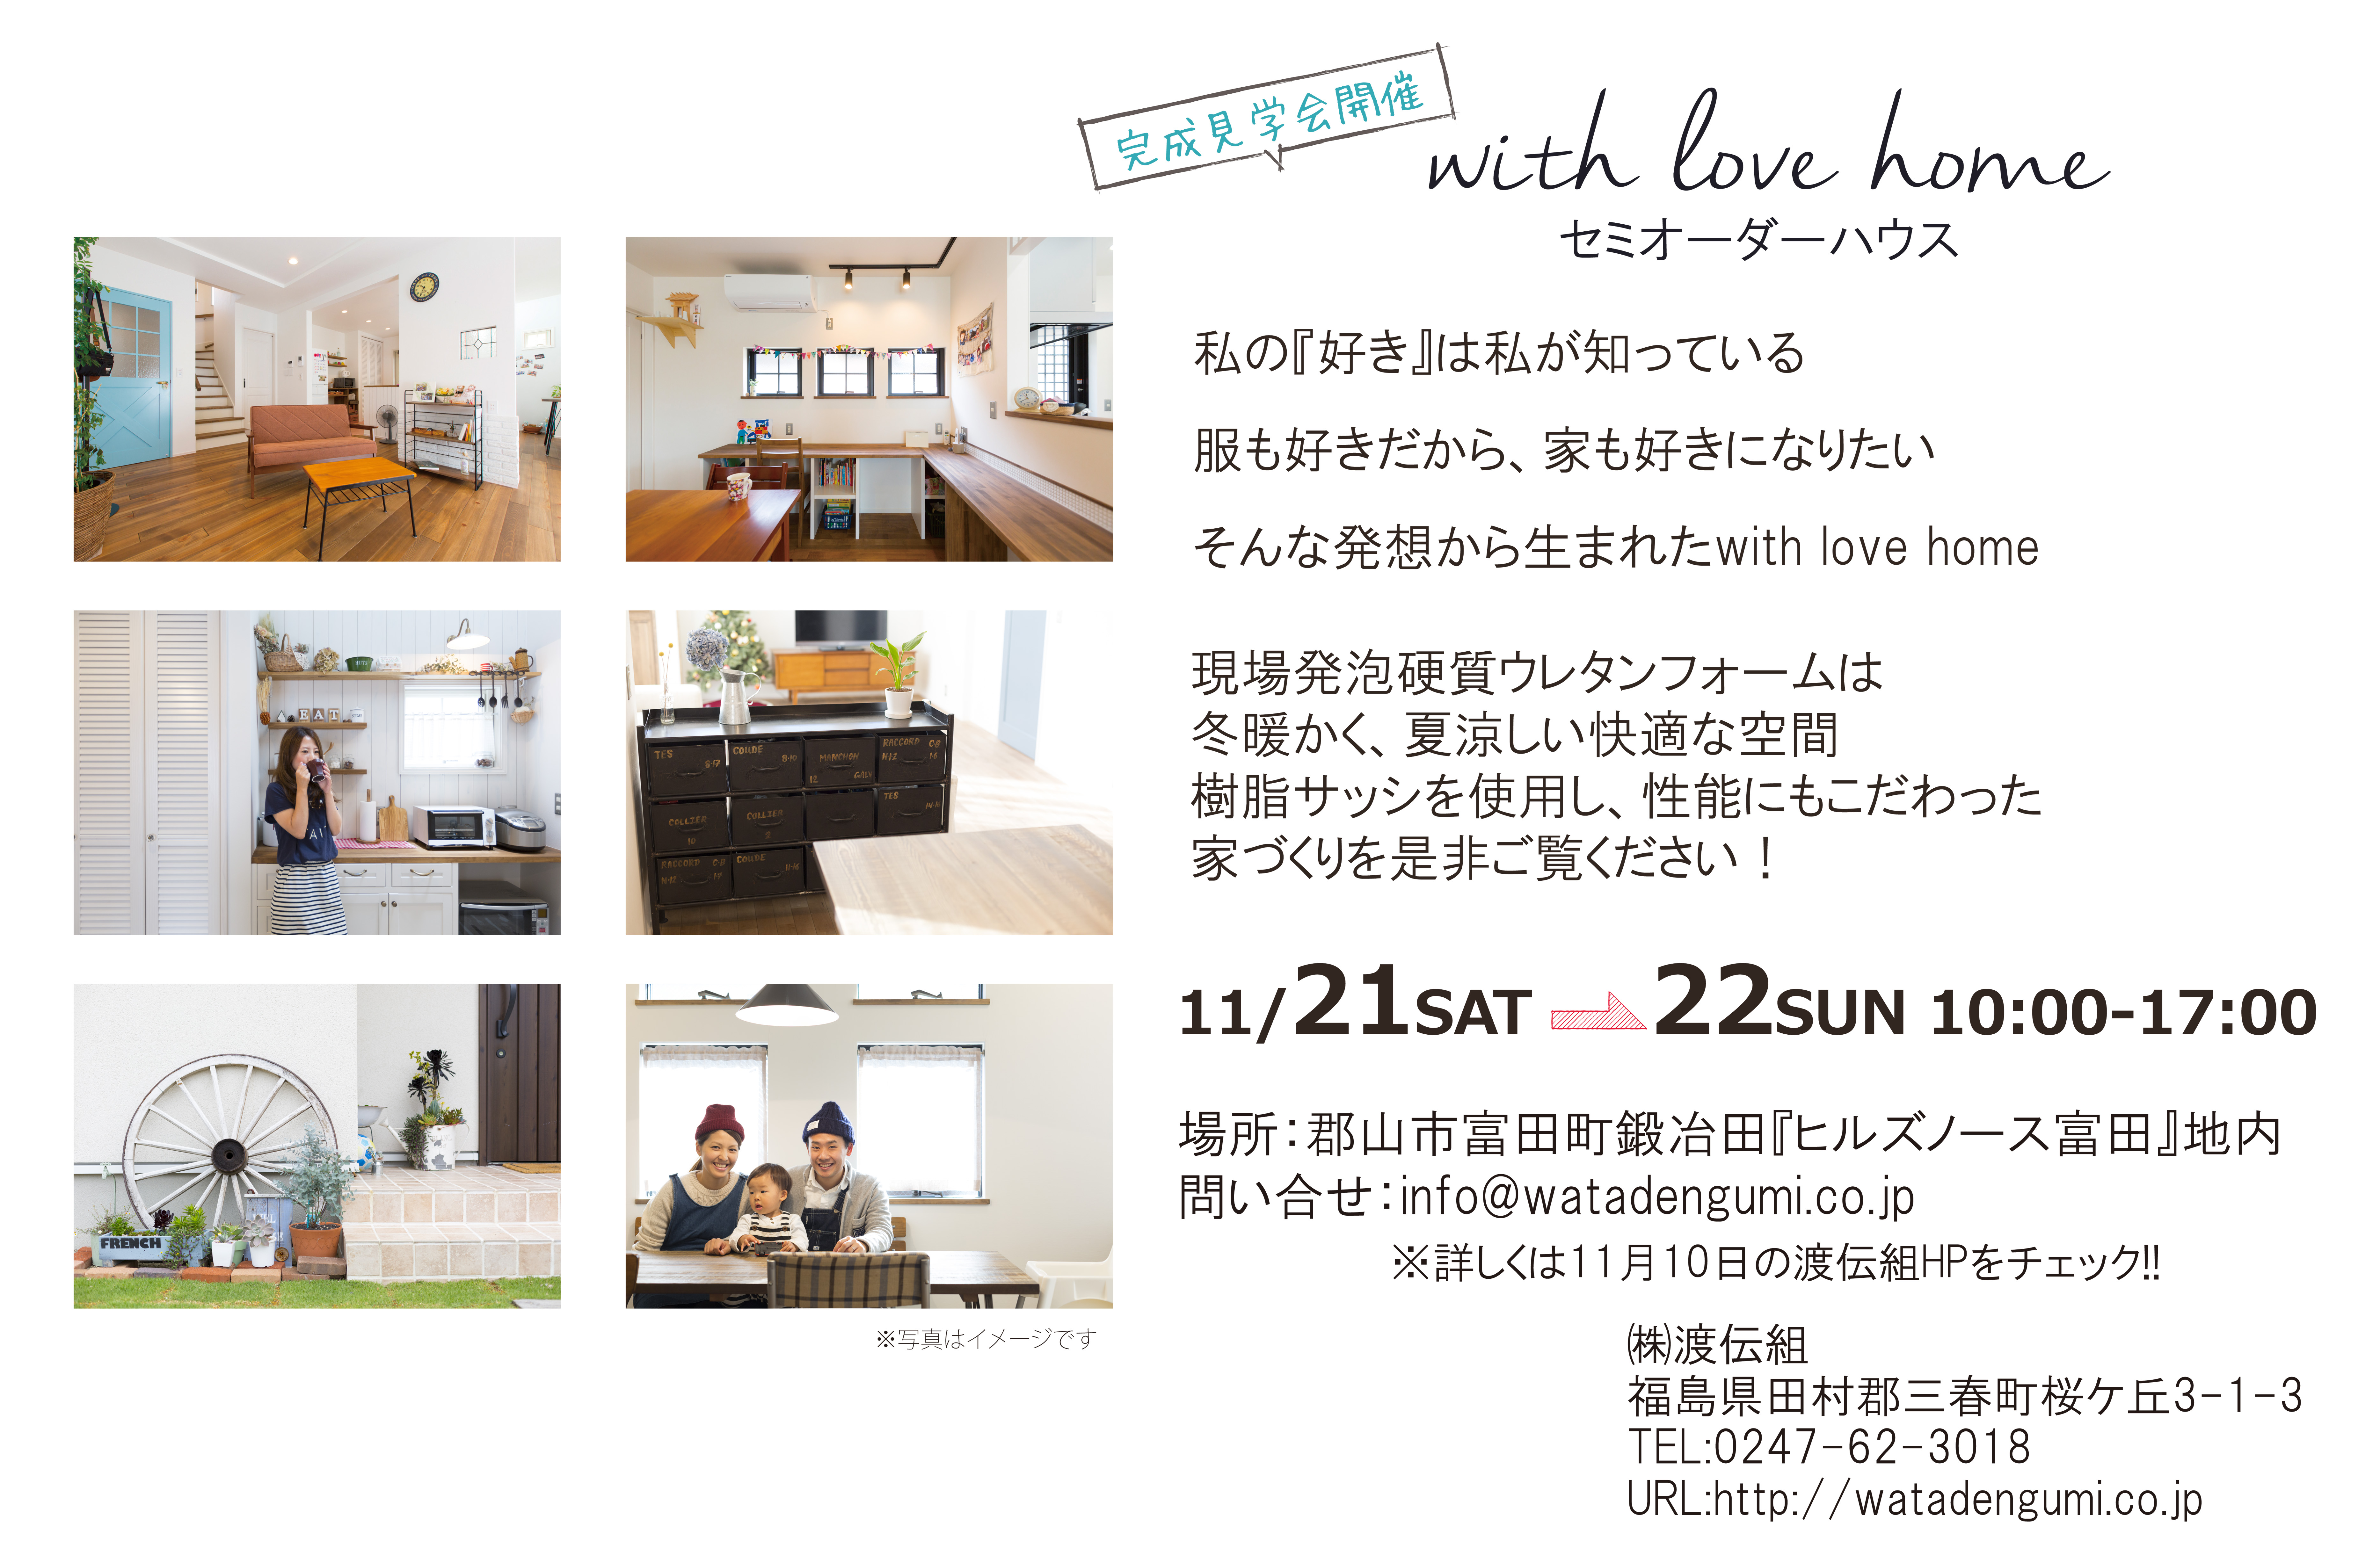 http://watadengumi.co.jp/wp-content/uploads/2015/10/with-love-home-2.jpg